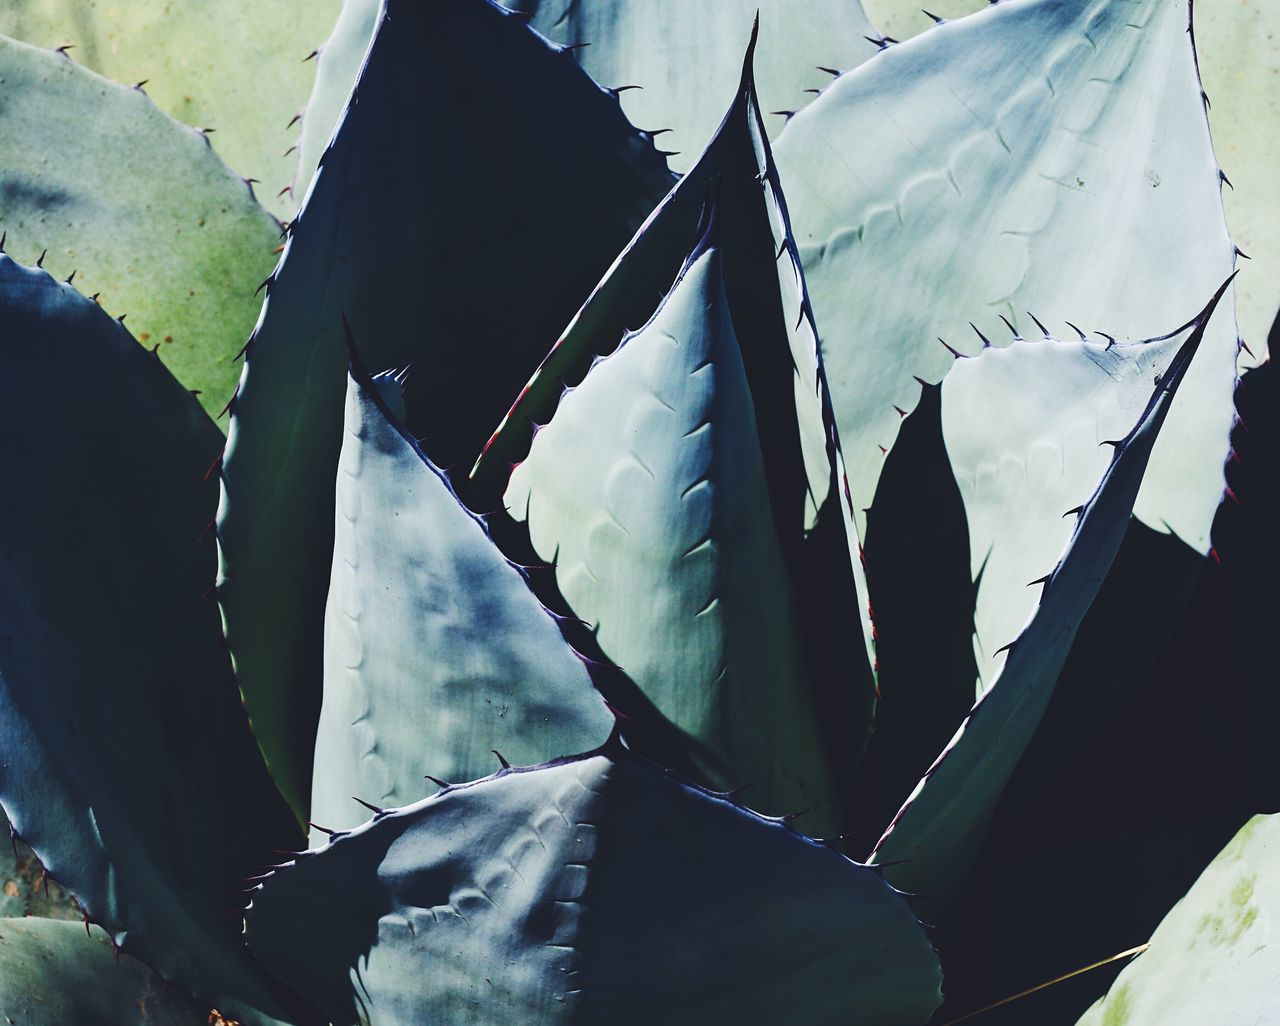 No People Leaf Day Close-up Low Angle View Outdoors Backgrounds Nature Agave Plant Vscocam Nature Photography Beauty In Nature Succulents Green Color Green Vacations Plants Nature Vsconature